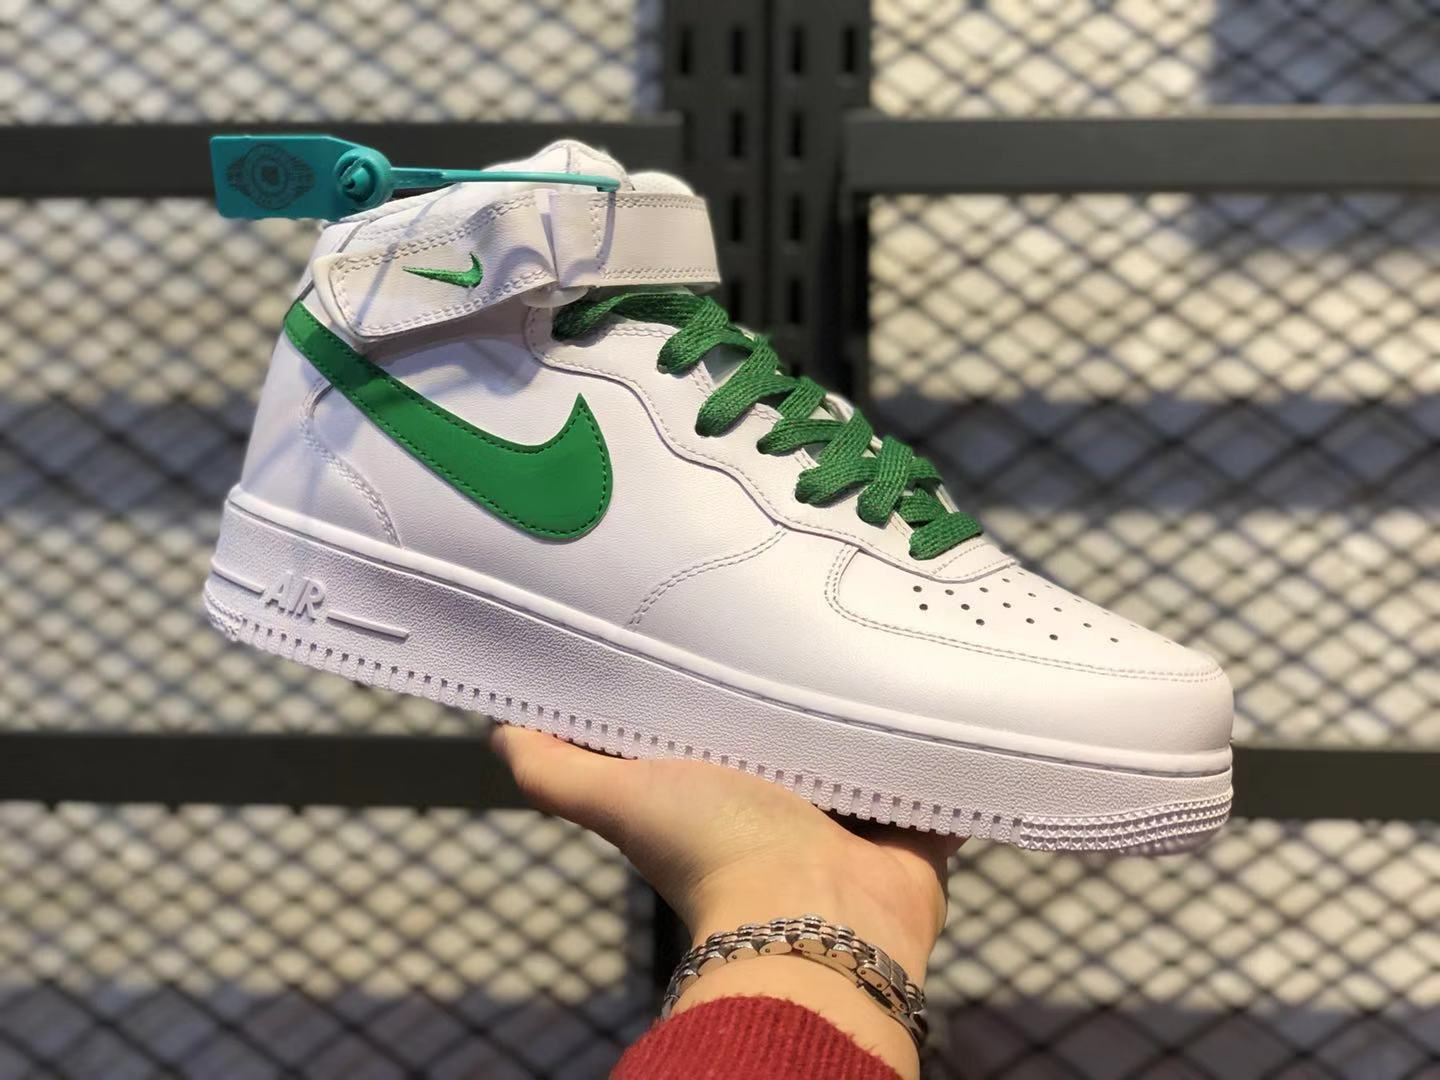 Nike Air Force 1 Mid White/Green Classic Shoes For Online Sale 366731-909